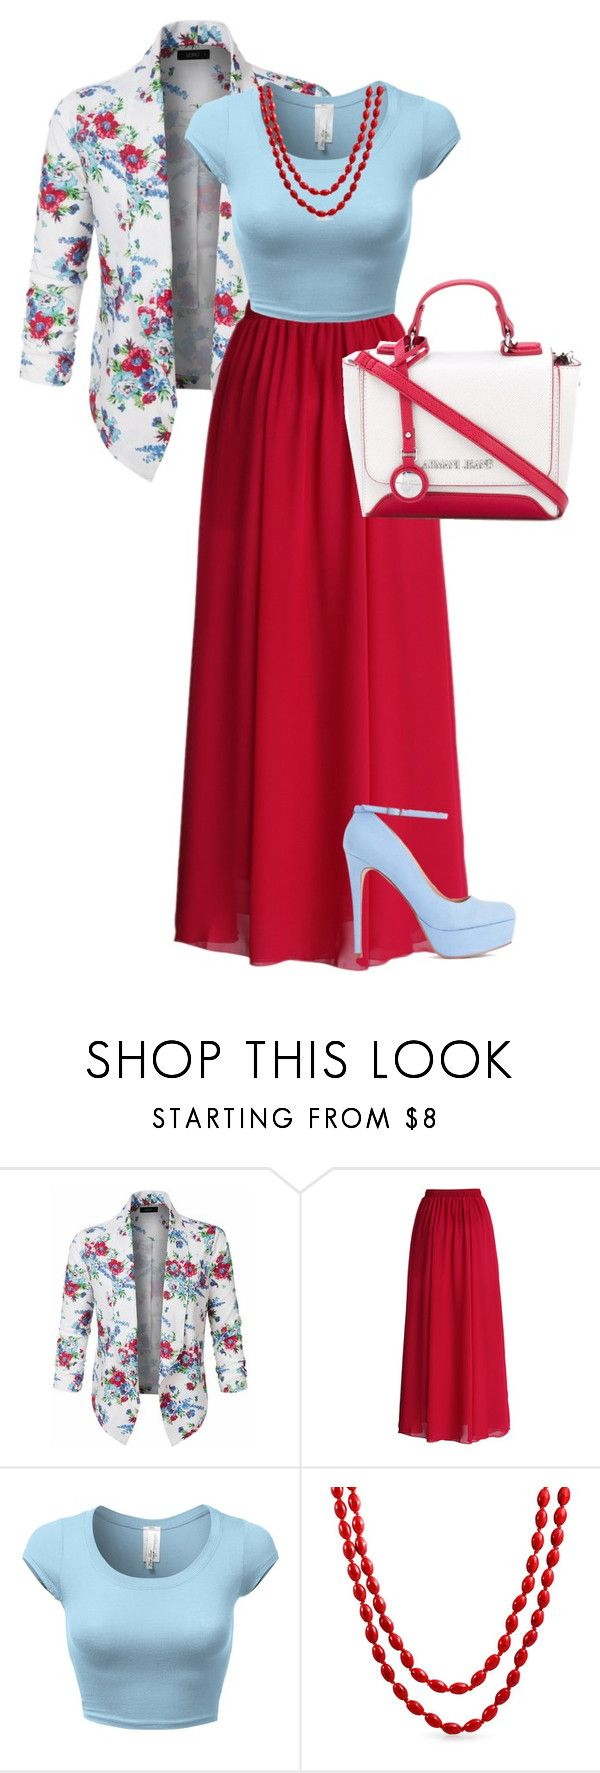 """""""Outfit 17"""" by x-quirkyqueen-x on Polyvore featuring LE3NO, Chicwish, Bling Jewelry and Armani Jeans"""